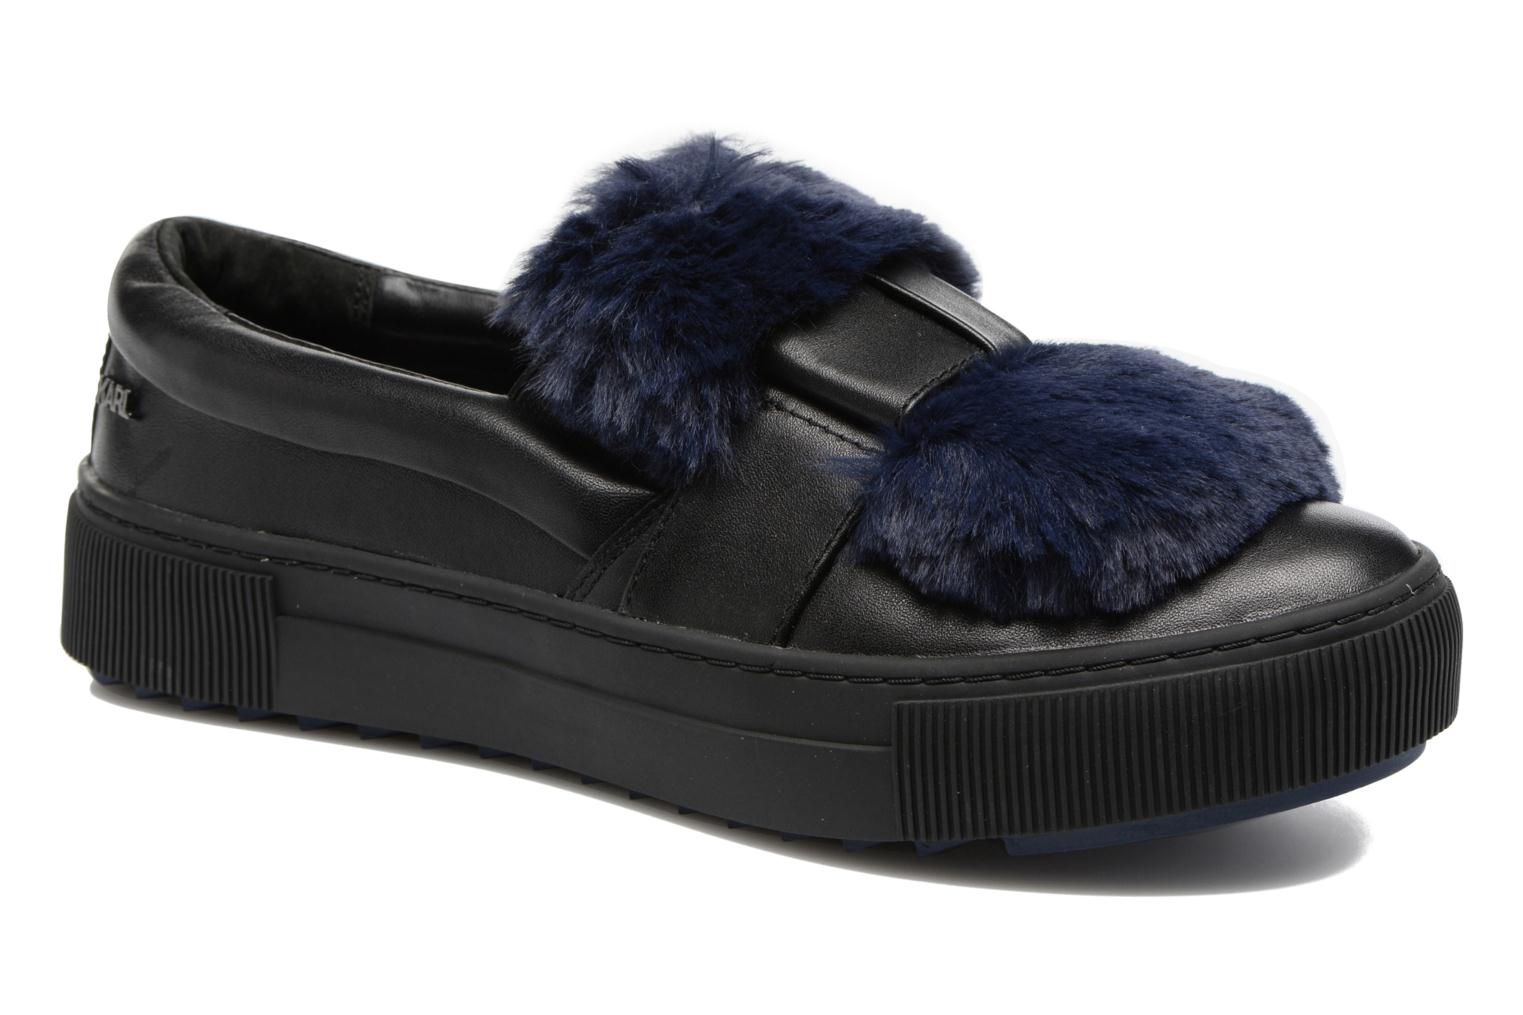 Luxor Kup PomBow Slip On by Karl LagerfeldRebajas - 20%